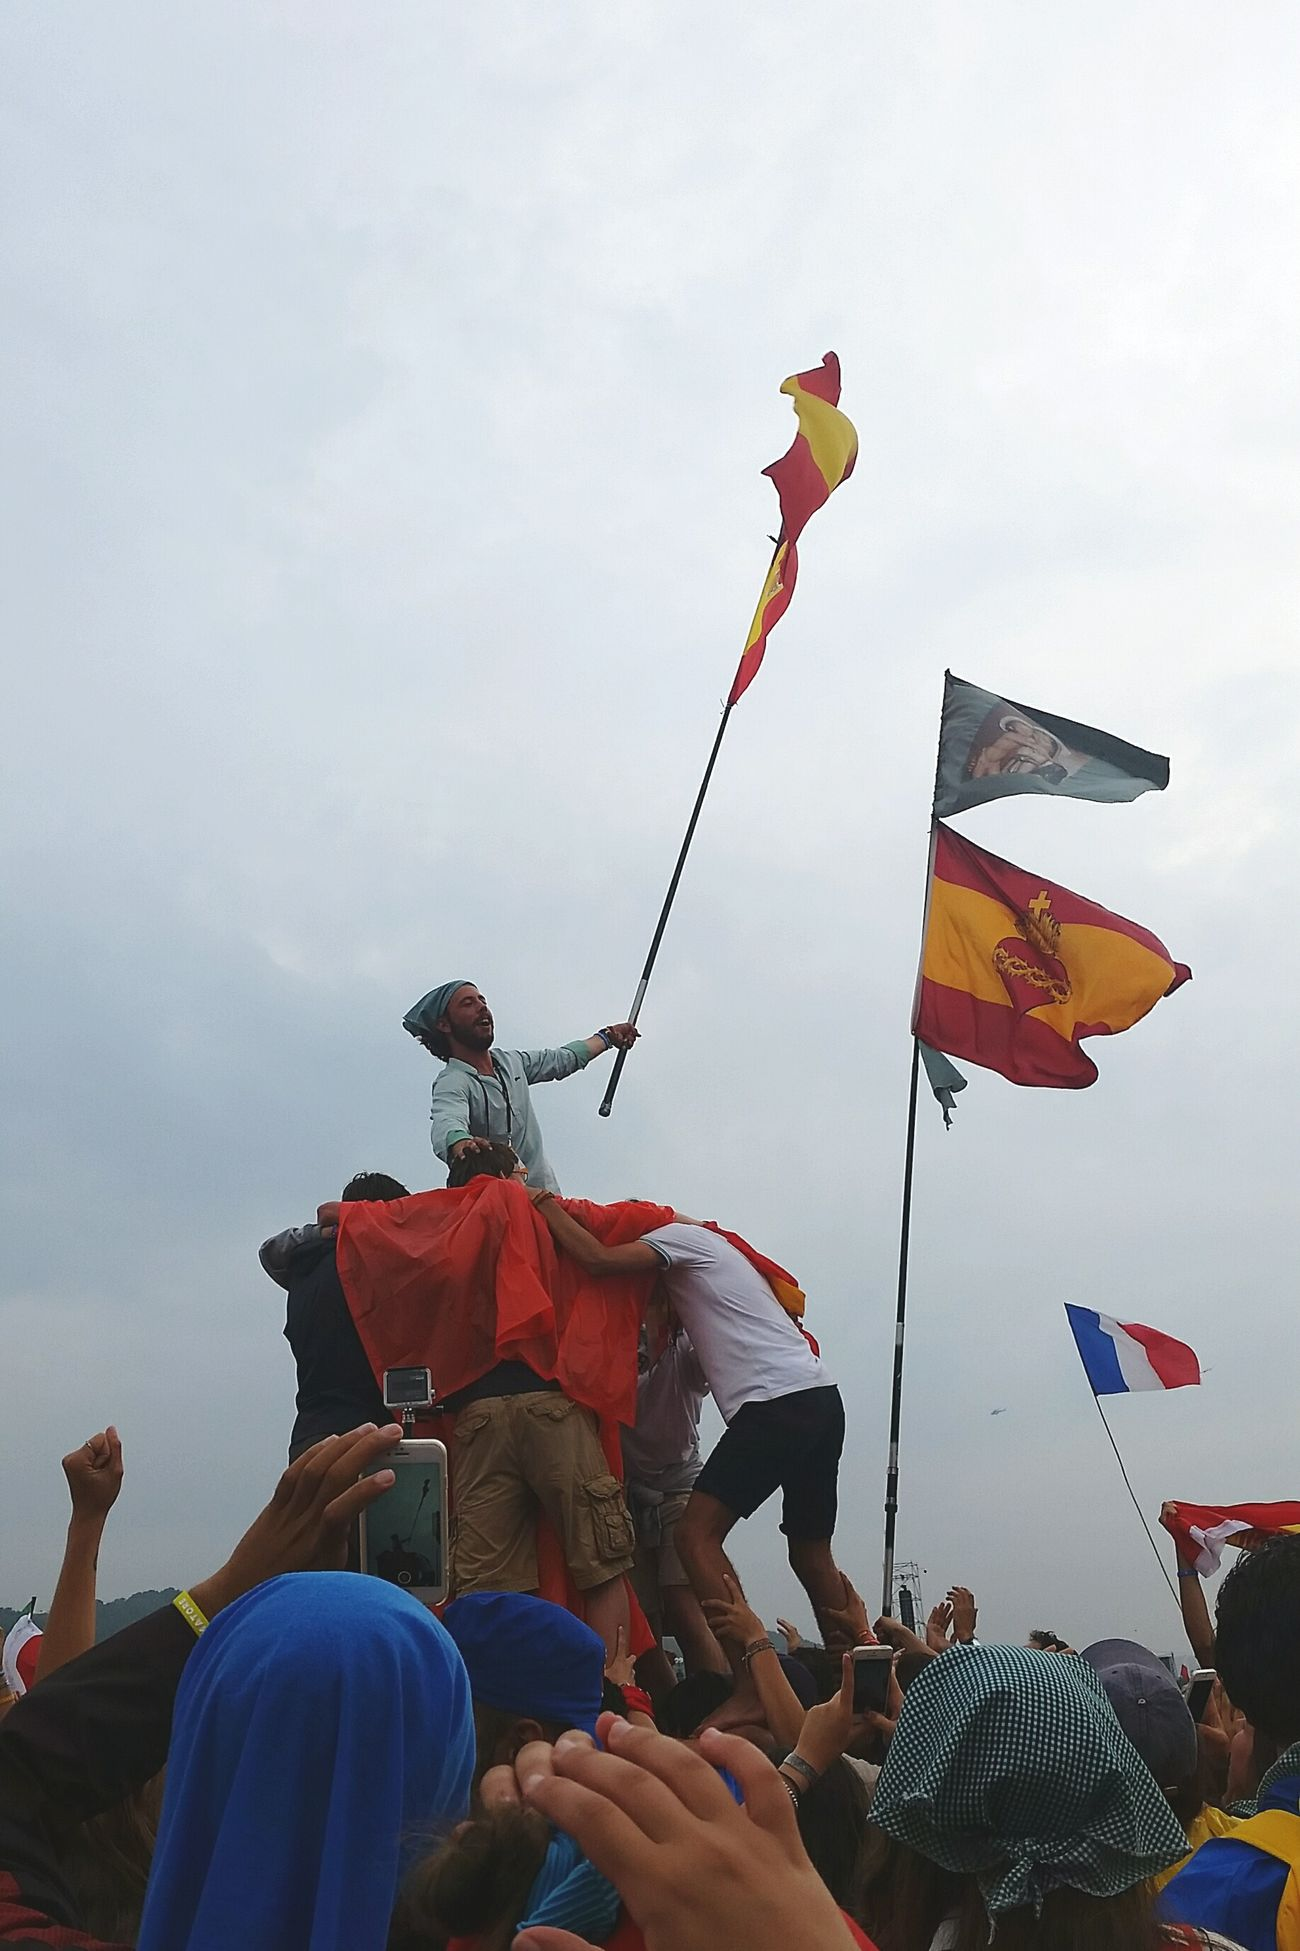 Festival Season People Having Fun Having Fun Having A Great Time Openspace People Photography Flags Sky People Together Kracovia Cracow Trip People Around You Cracow2016 GMGPolonia2016 GMG2016 WYDKrakow WYD2016 Countries Tower Of People Europe Polonia  Blonia Spanish Style Spanish Flag French Flag